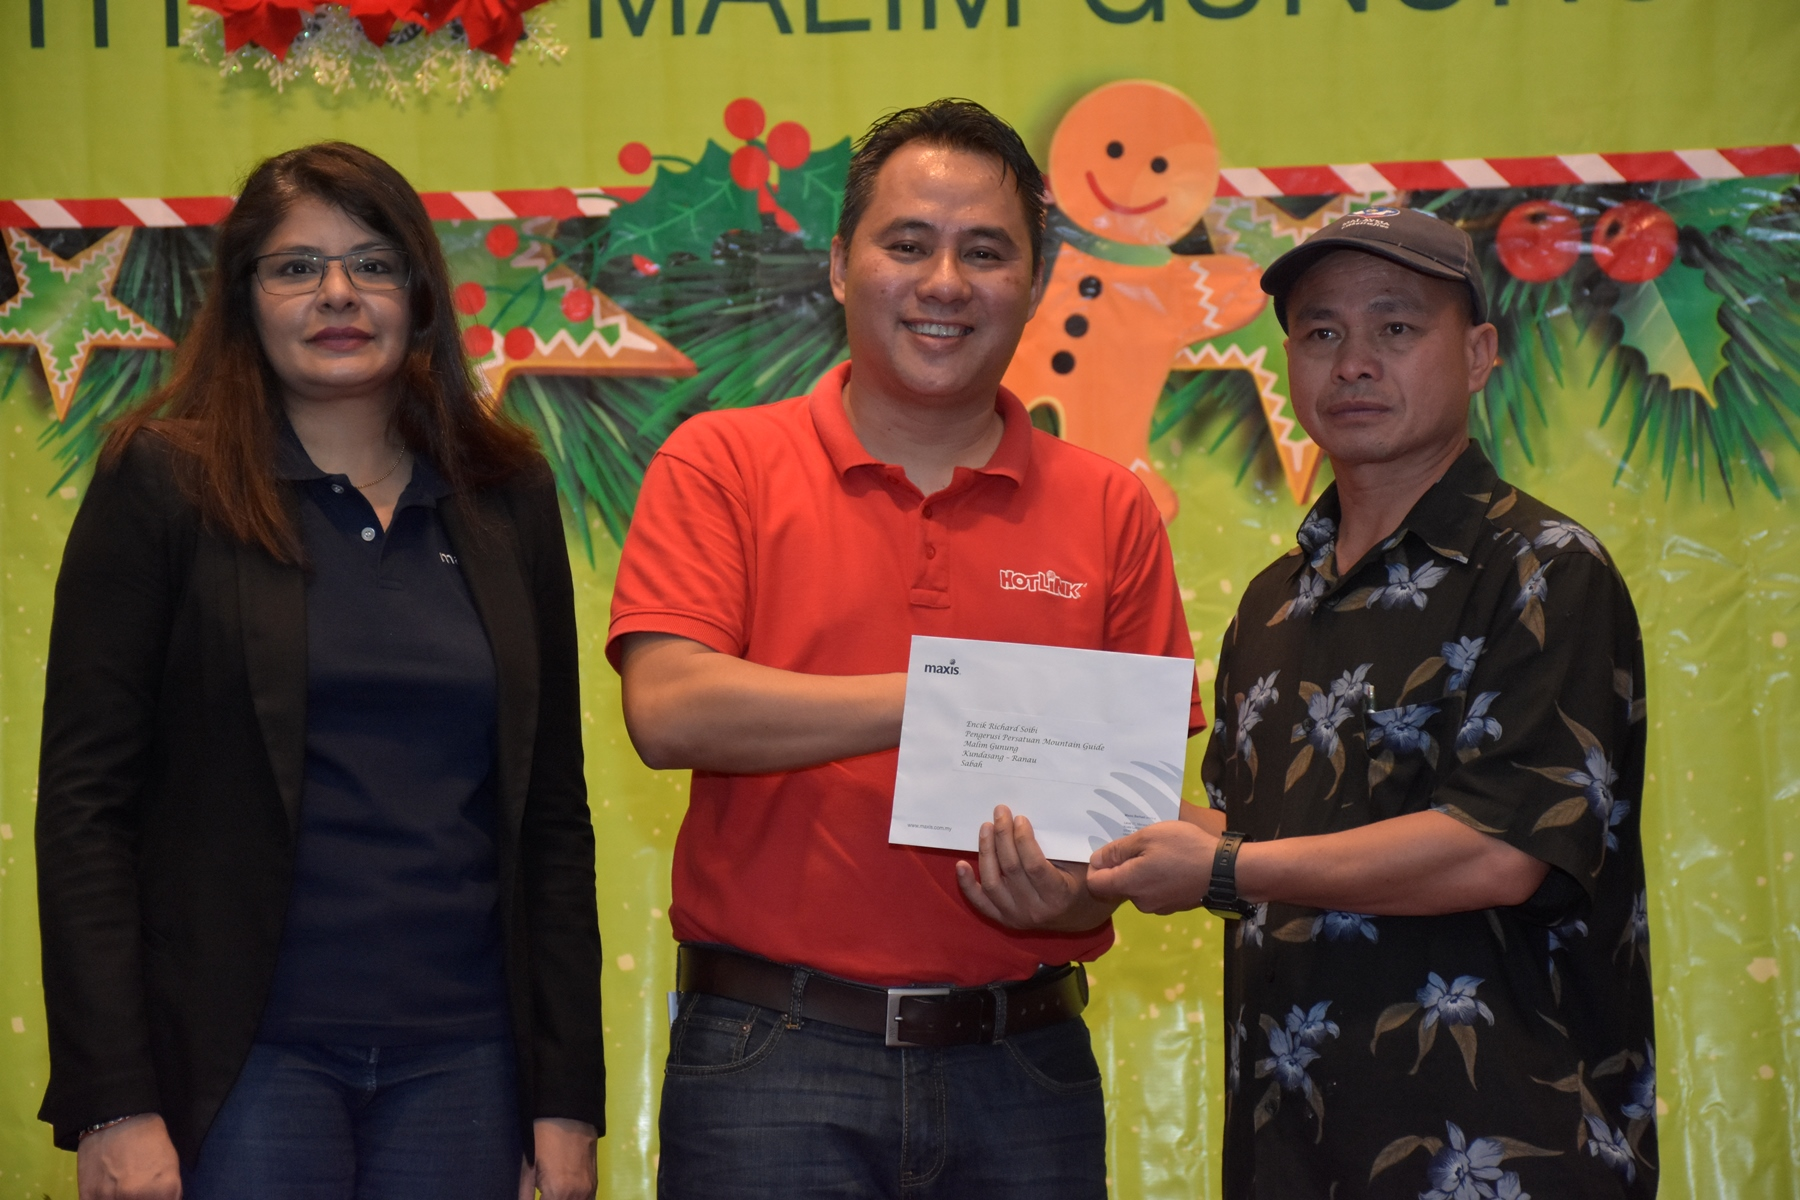 Maxis contributed RM10,000 to Richard Soibi, Chairman, Mount Kinabalu Guides Association. (From Left, Mariam Bevi Batcha, Head of Corporate Affairs and Melvin Jeffrine Mojinun, Maxis Head of Sabah Region)